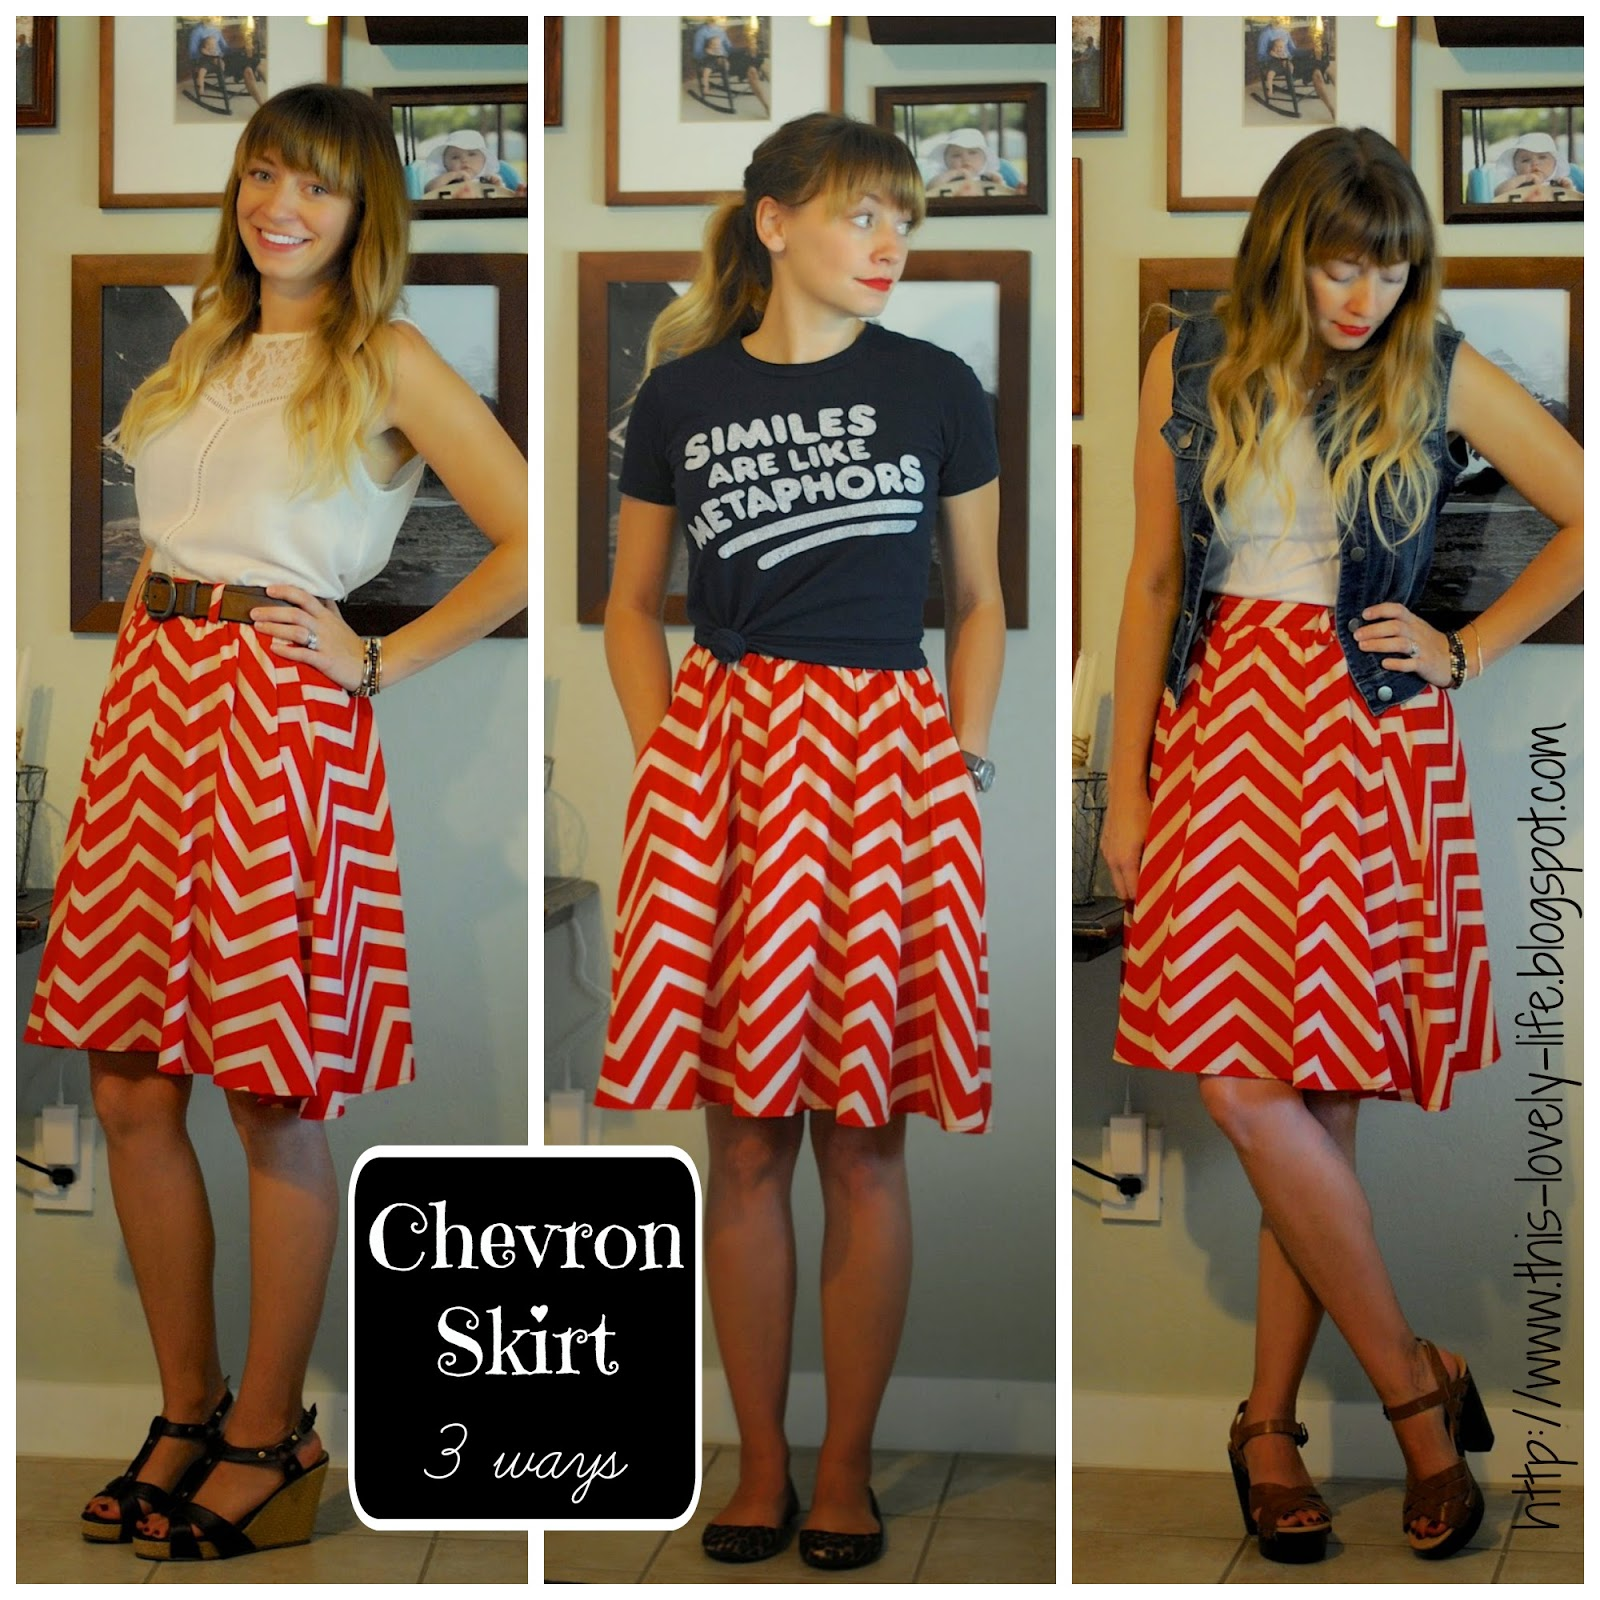 Chevron skirt styling